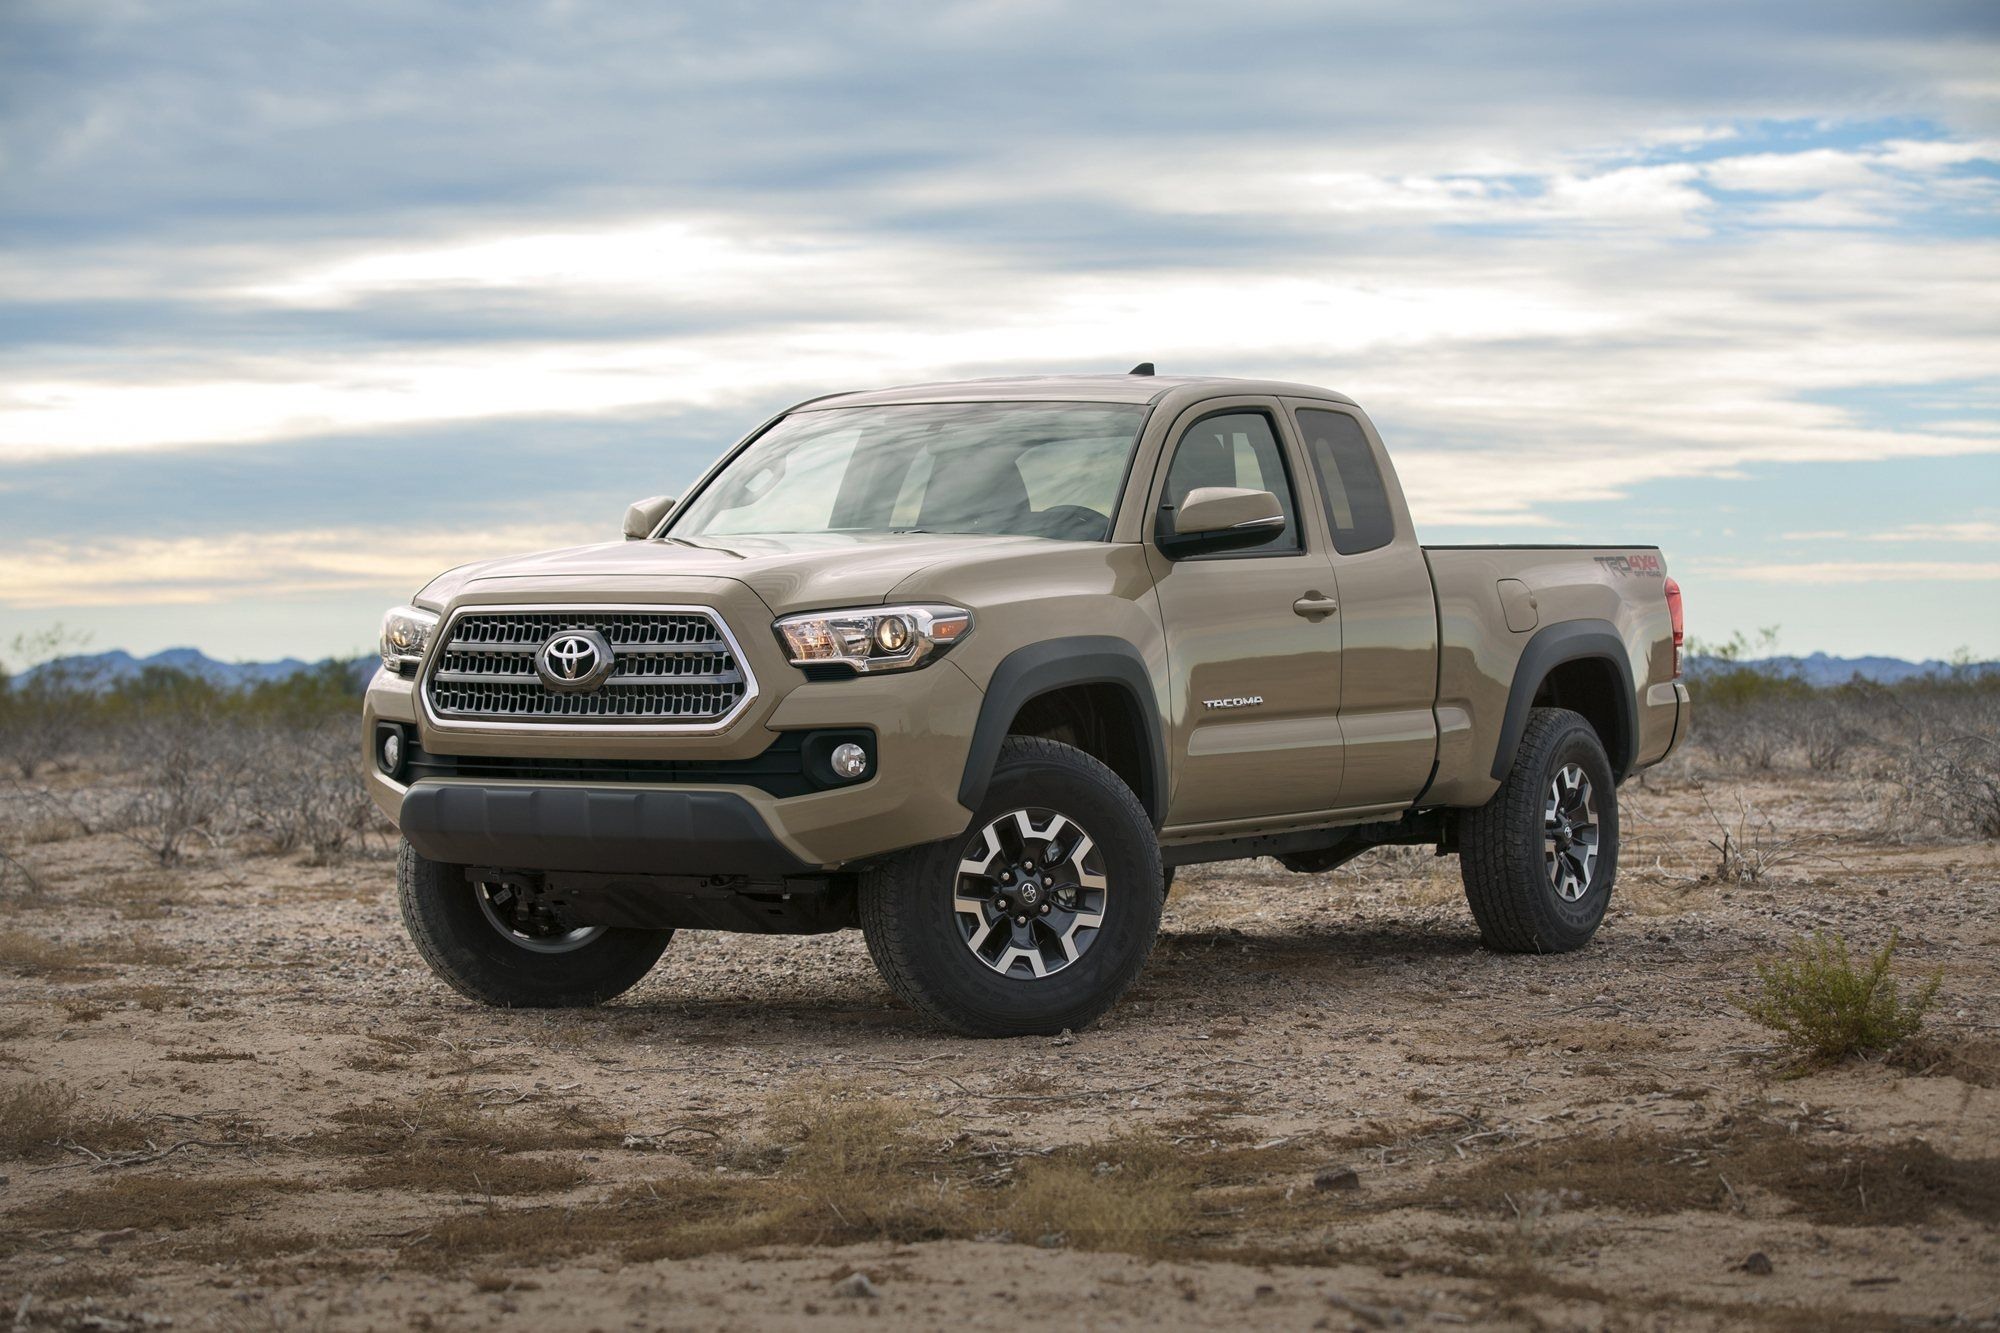 2016 Tacoma Diesel >> 2019 Toyota Tacoma Diesel Release Date Trucks Suv Reviews 2017